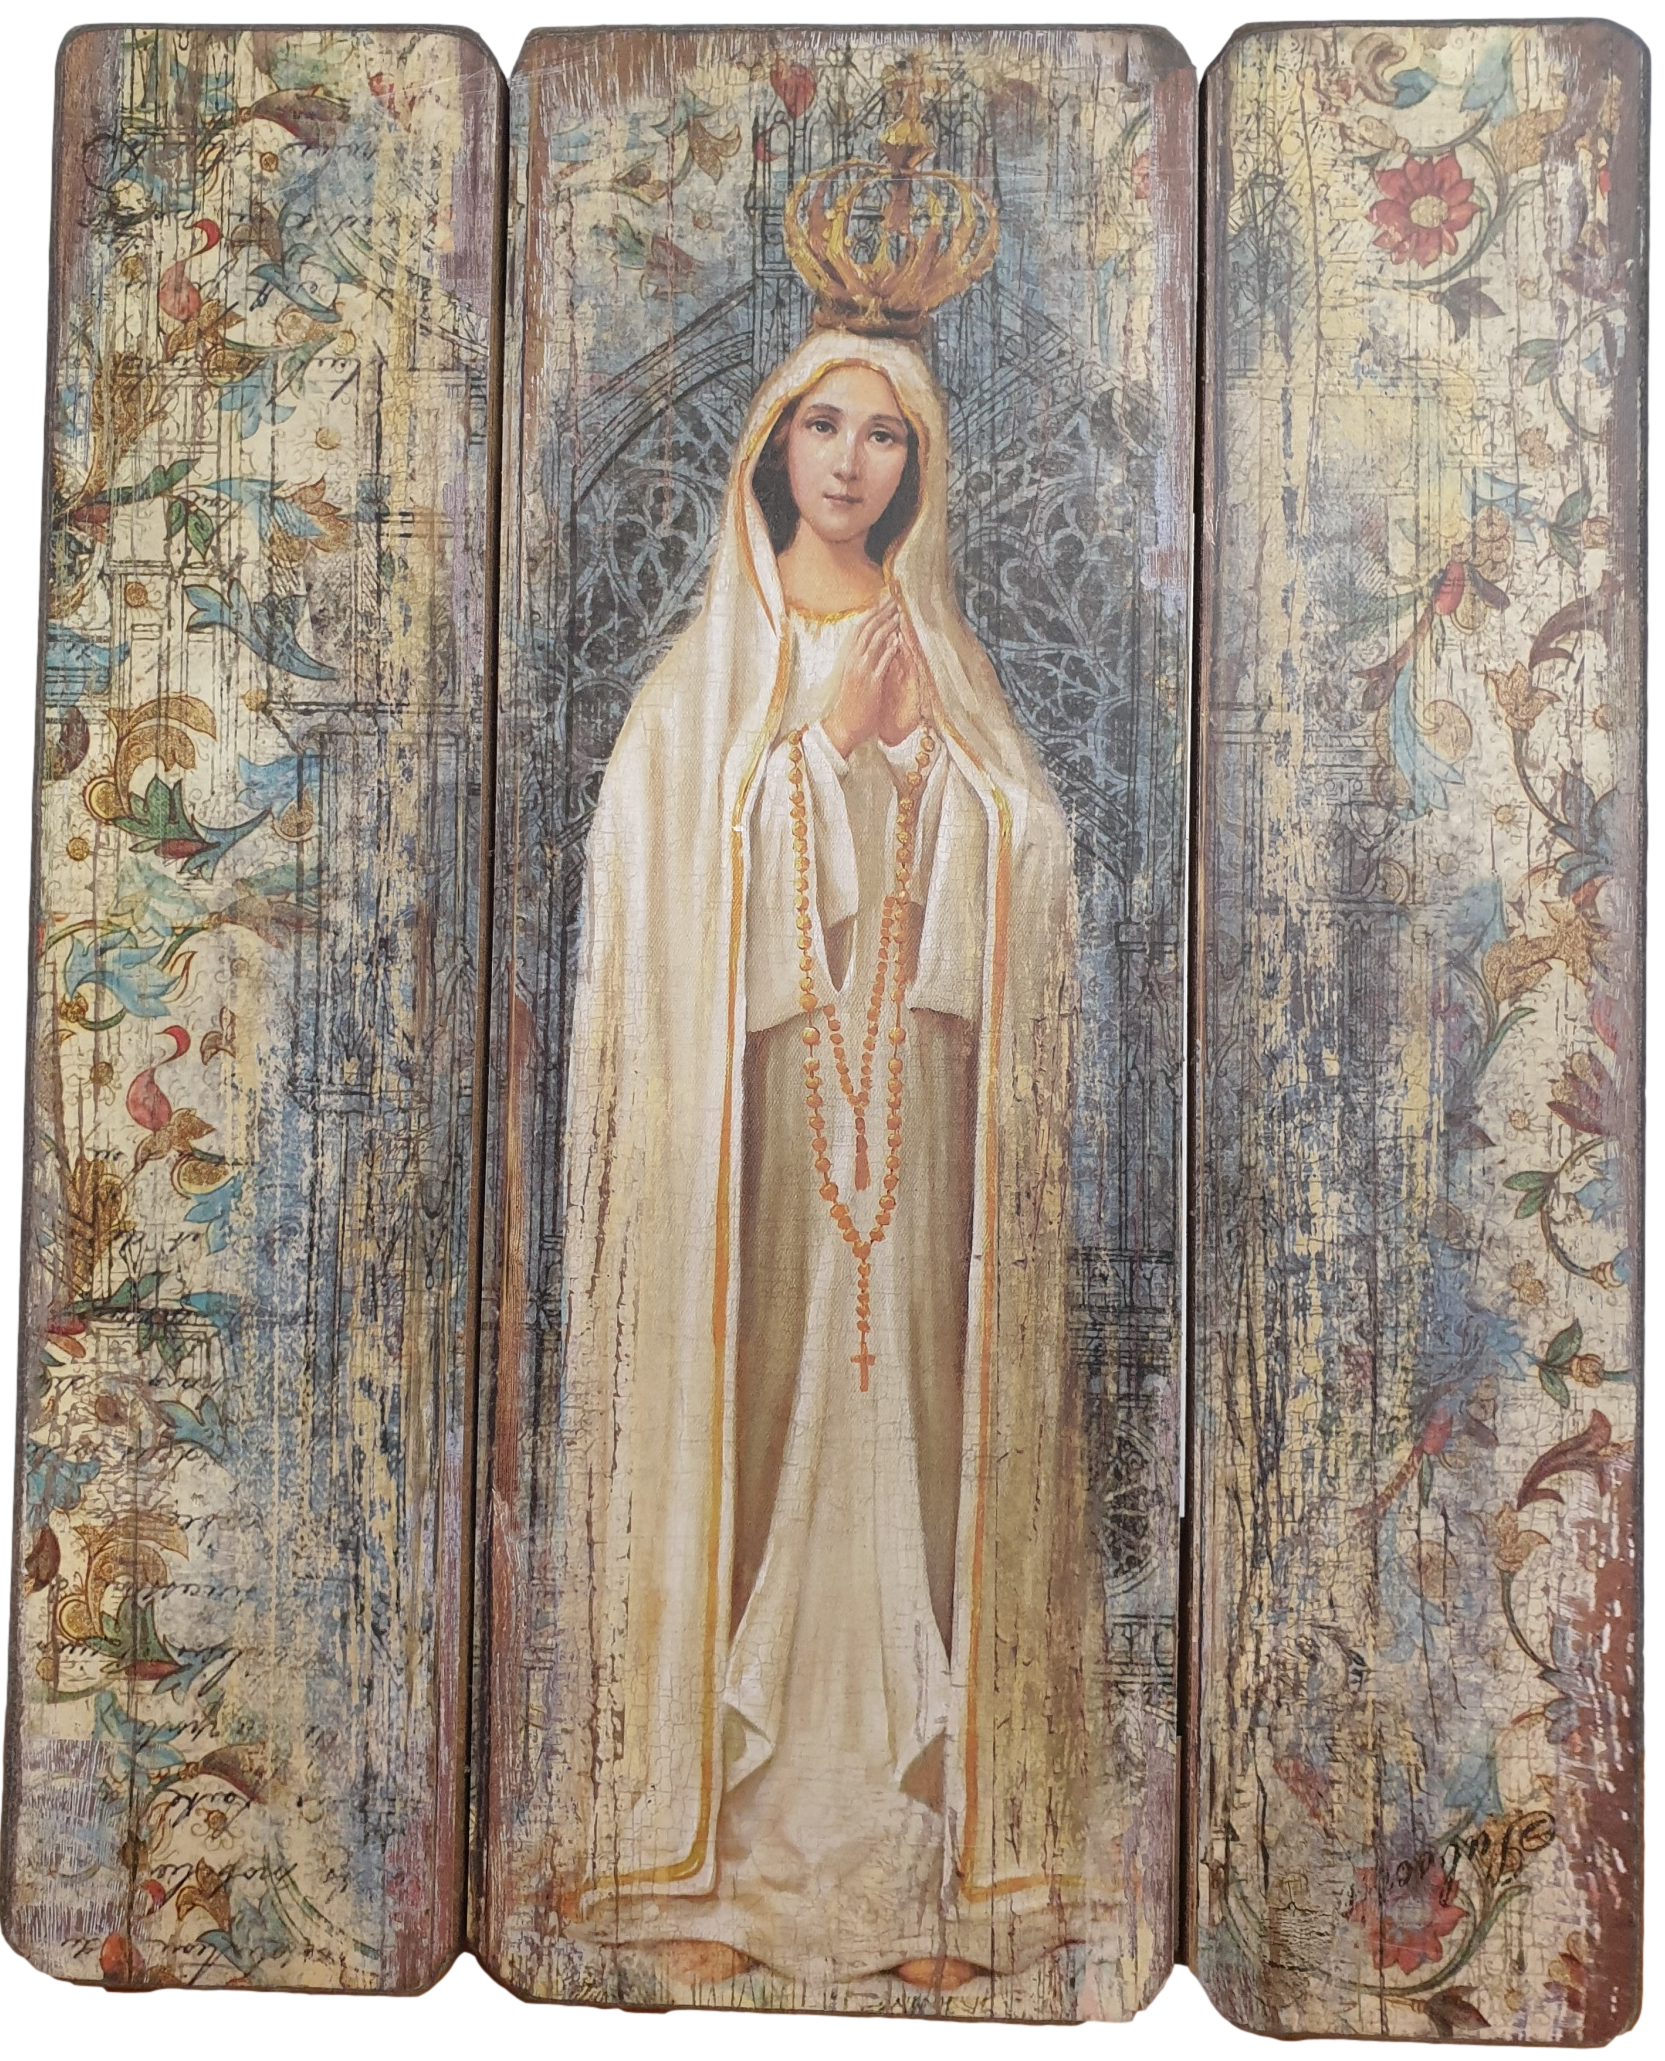 Our Lady of Fatima Panel